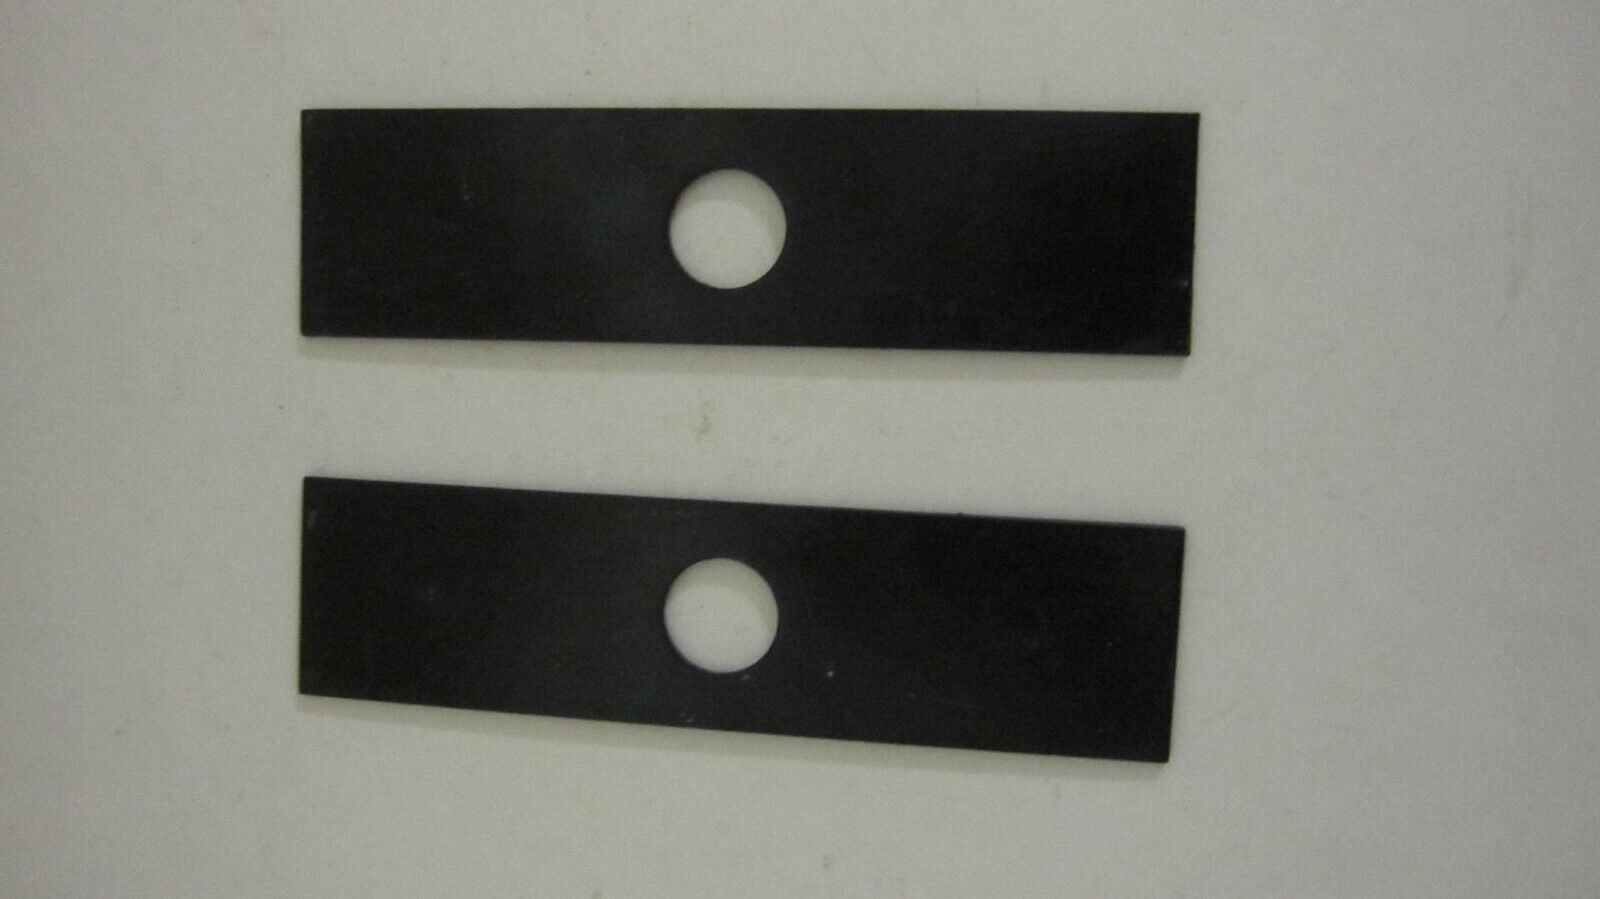 LAWN EDGER BLADES, LOT OF 2 - $6.49